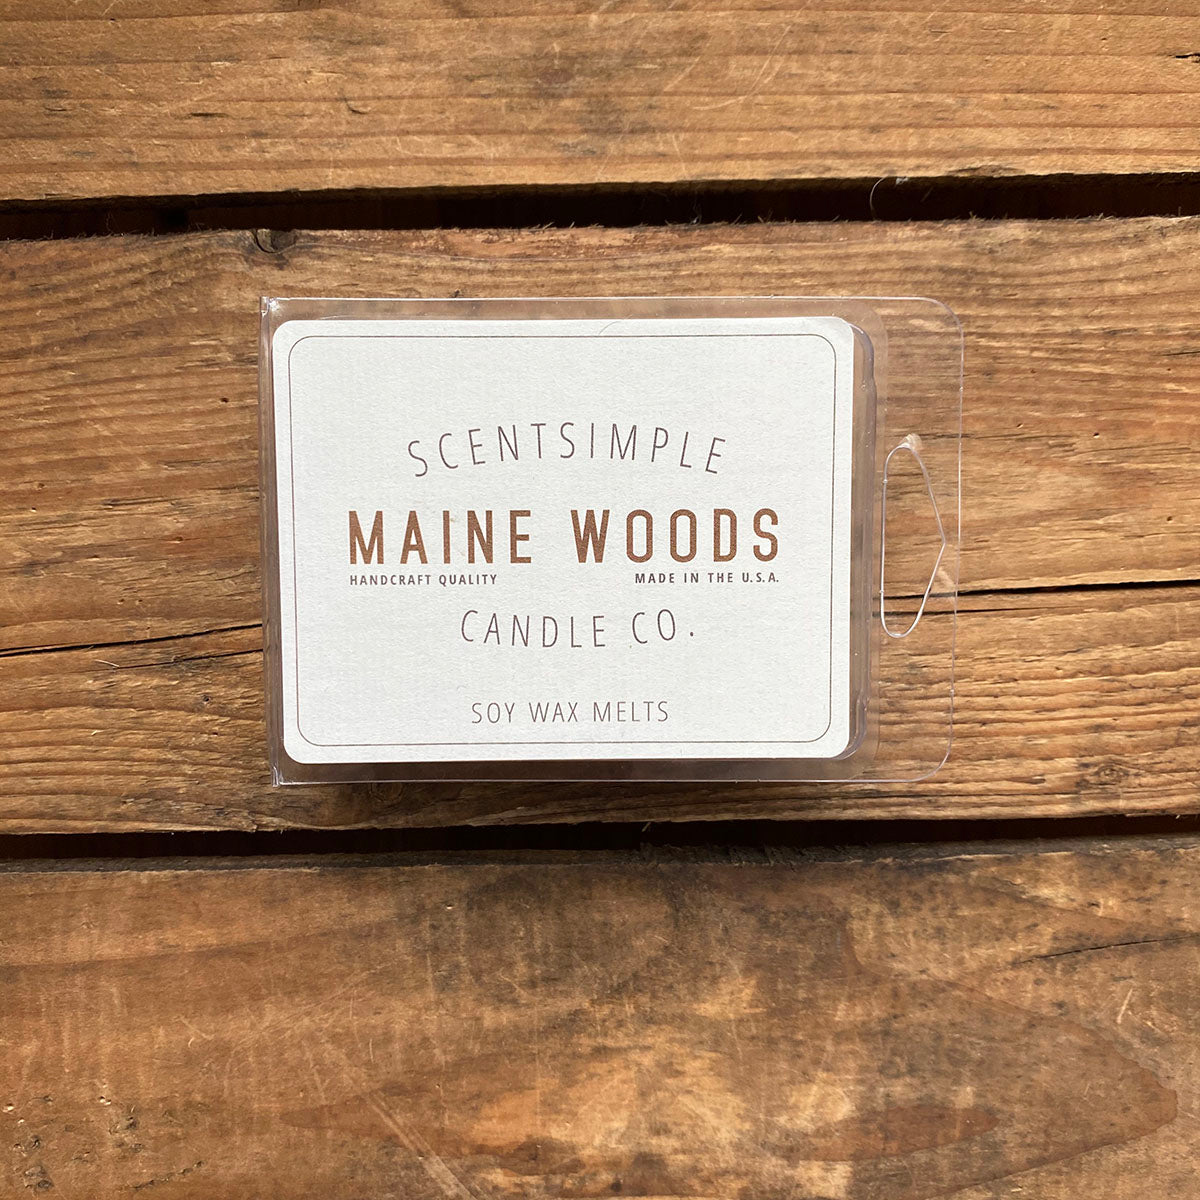 Maine Woods Scented Soy Wax Melts